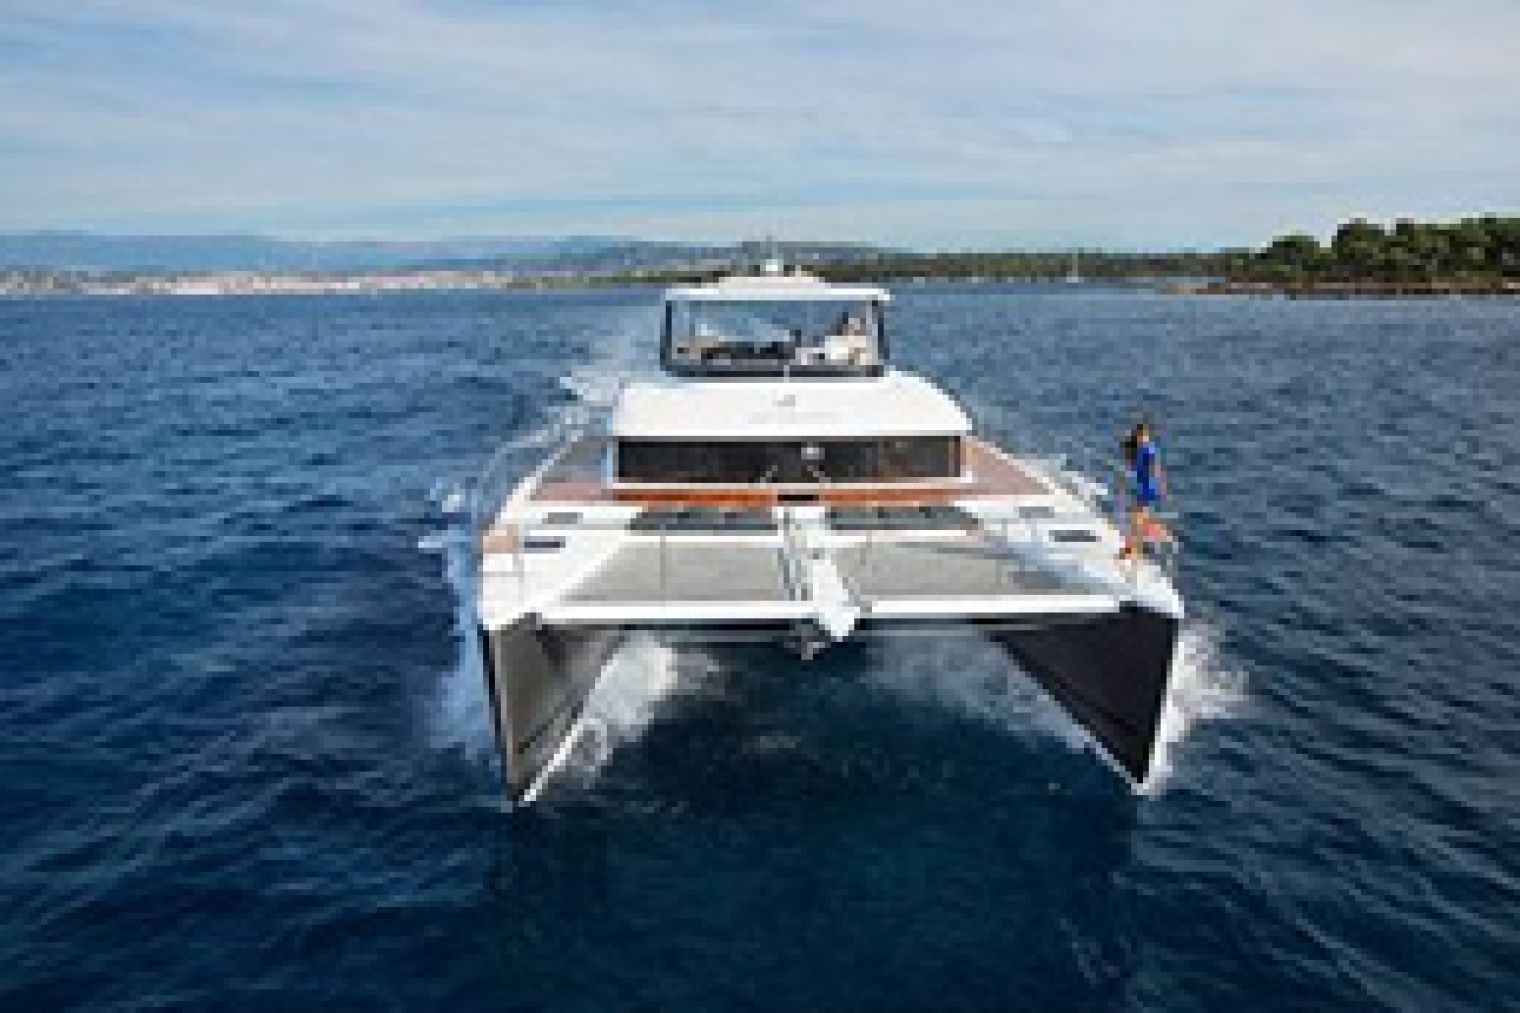 The Lagoon 630 Motor Yacht transatlantic crossing